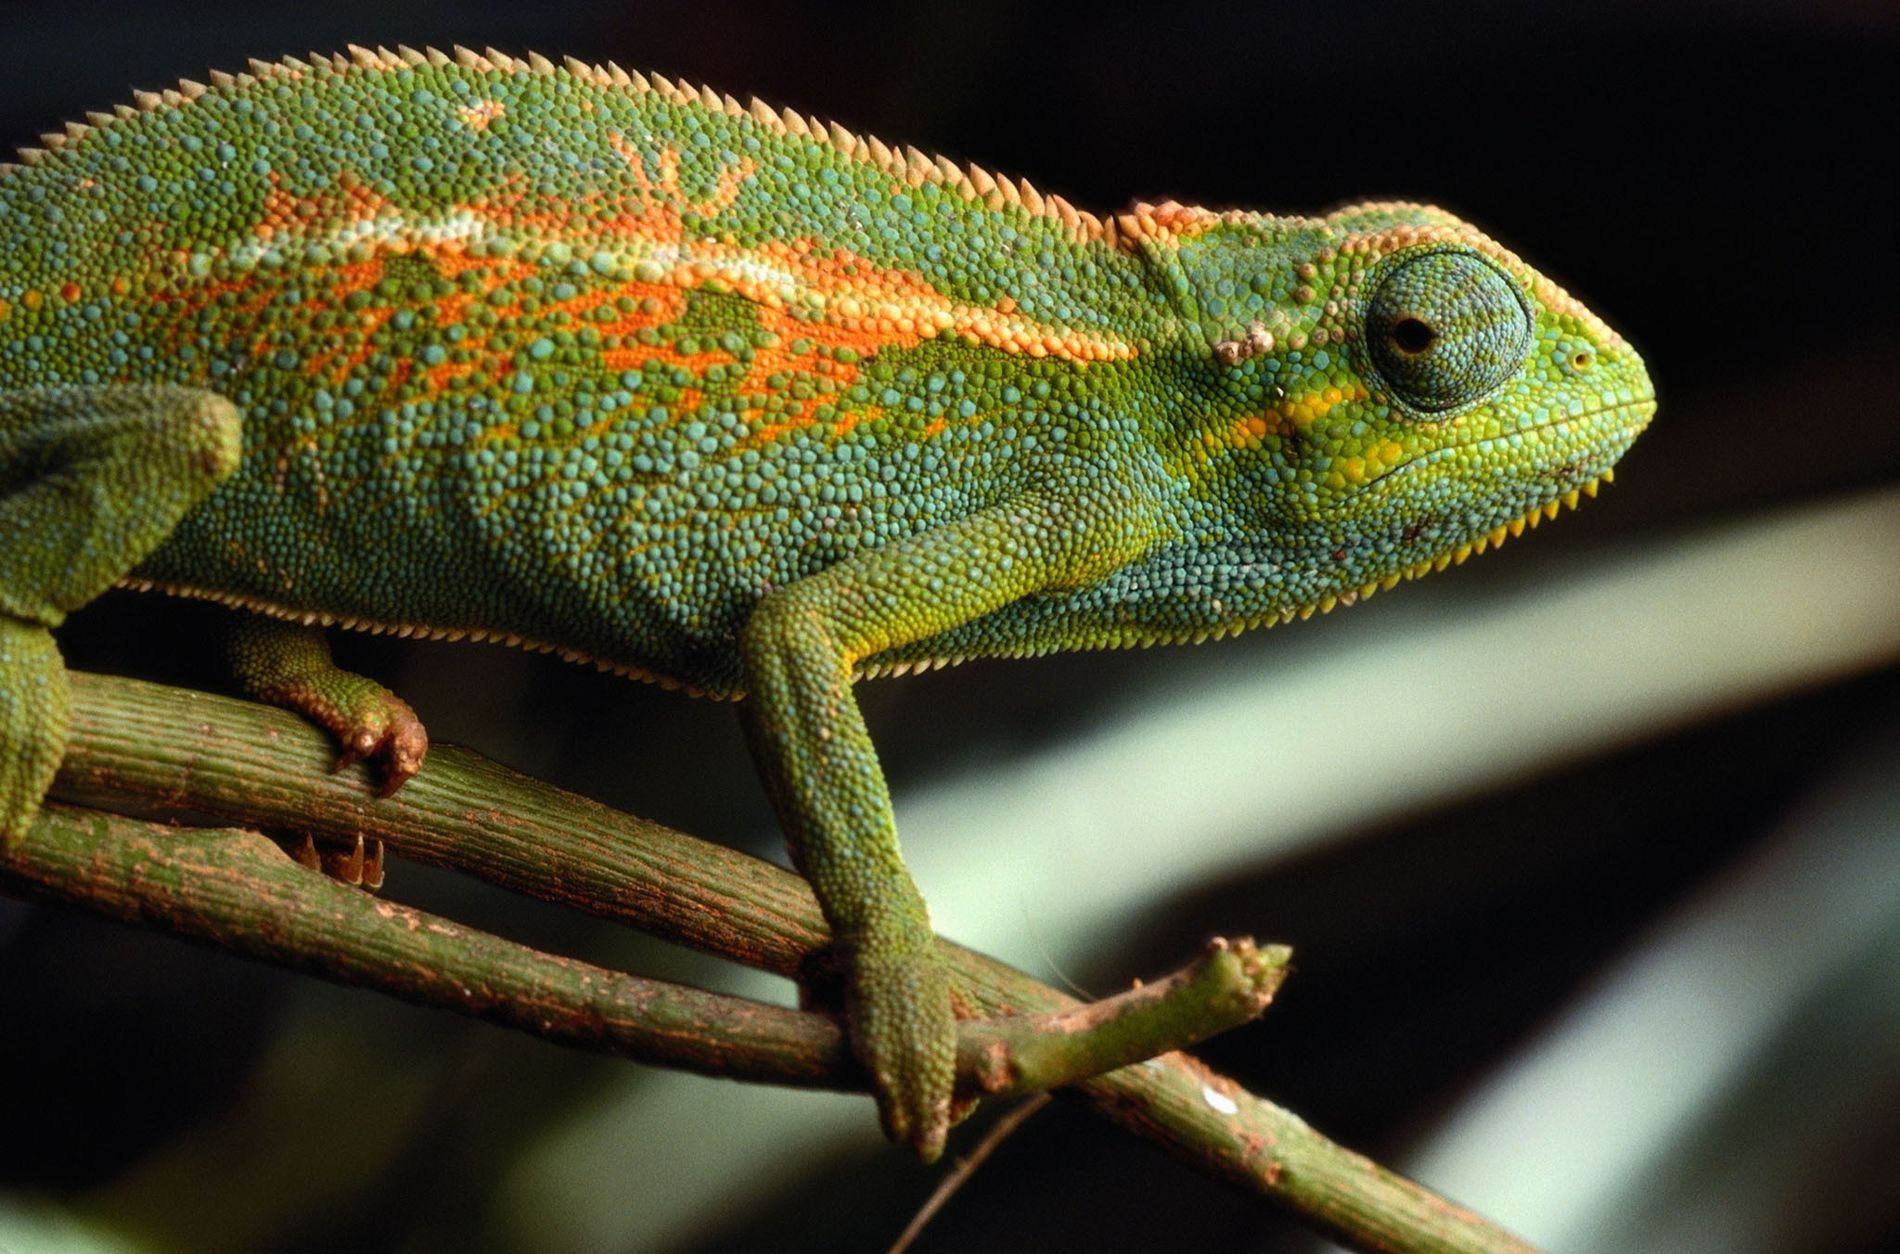 Masters of disguise, chameleons were among the lizards accused of spying on Iranian nuclear facilities.